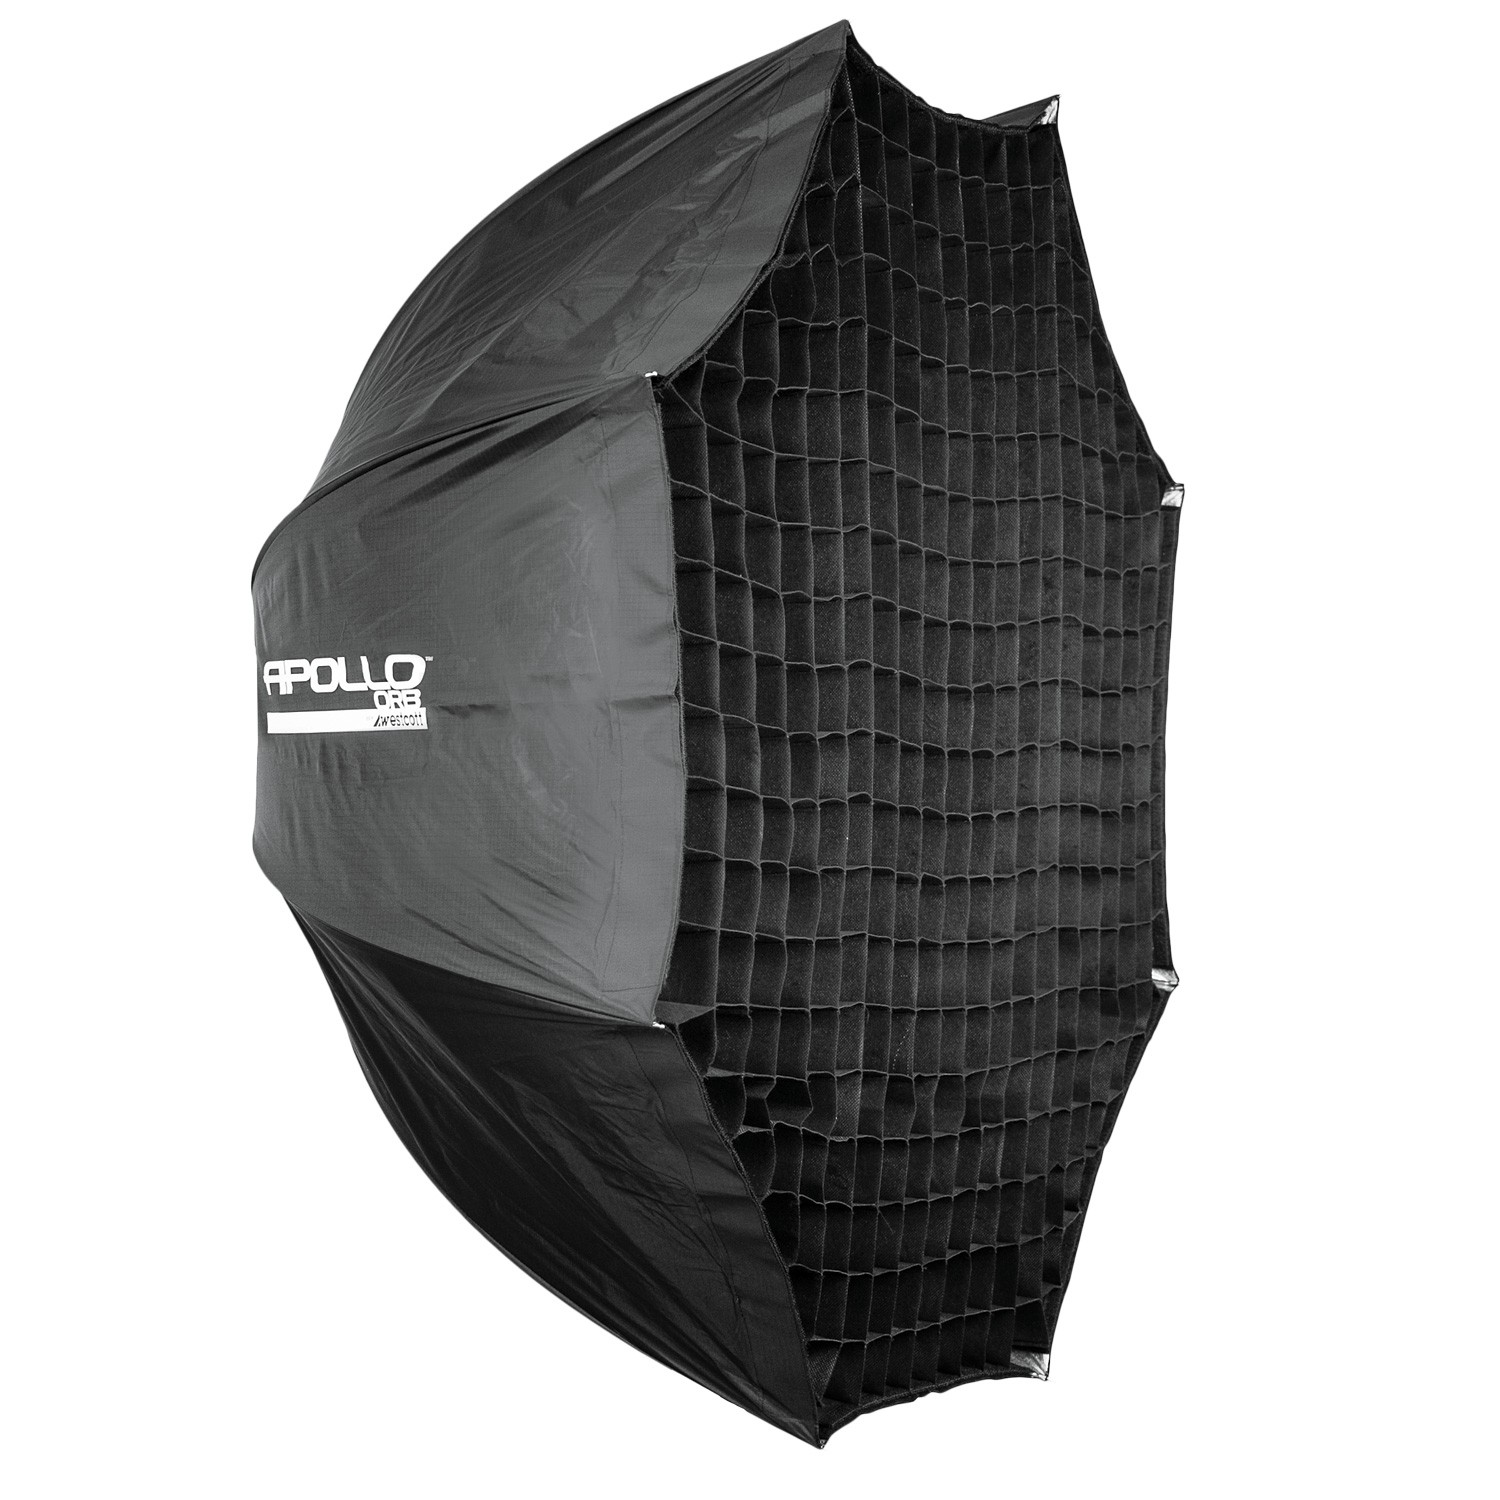 "Westcott Apollo Orb Octabox with 40° Grid (43"") - Includes ..."